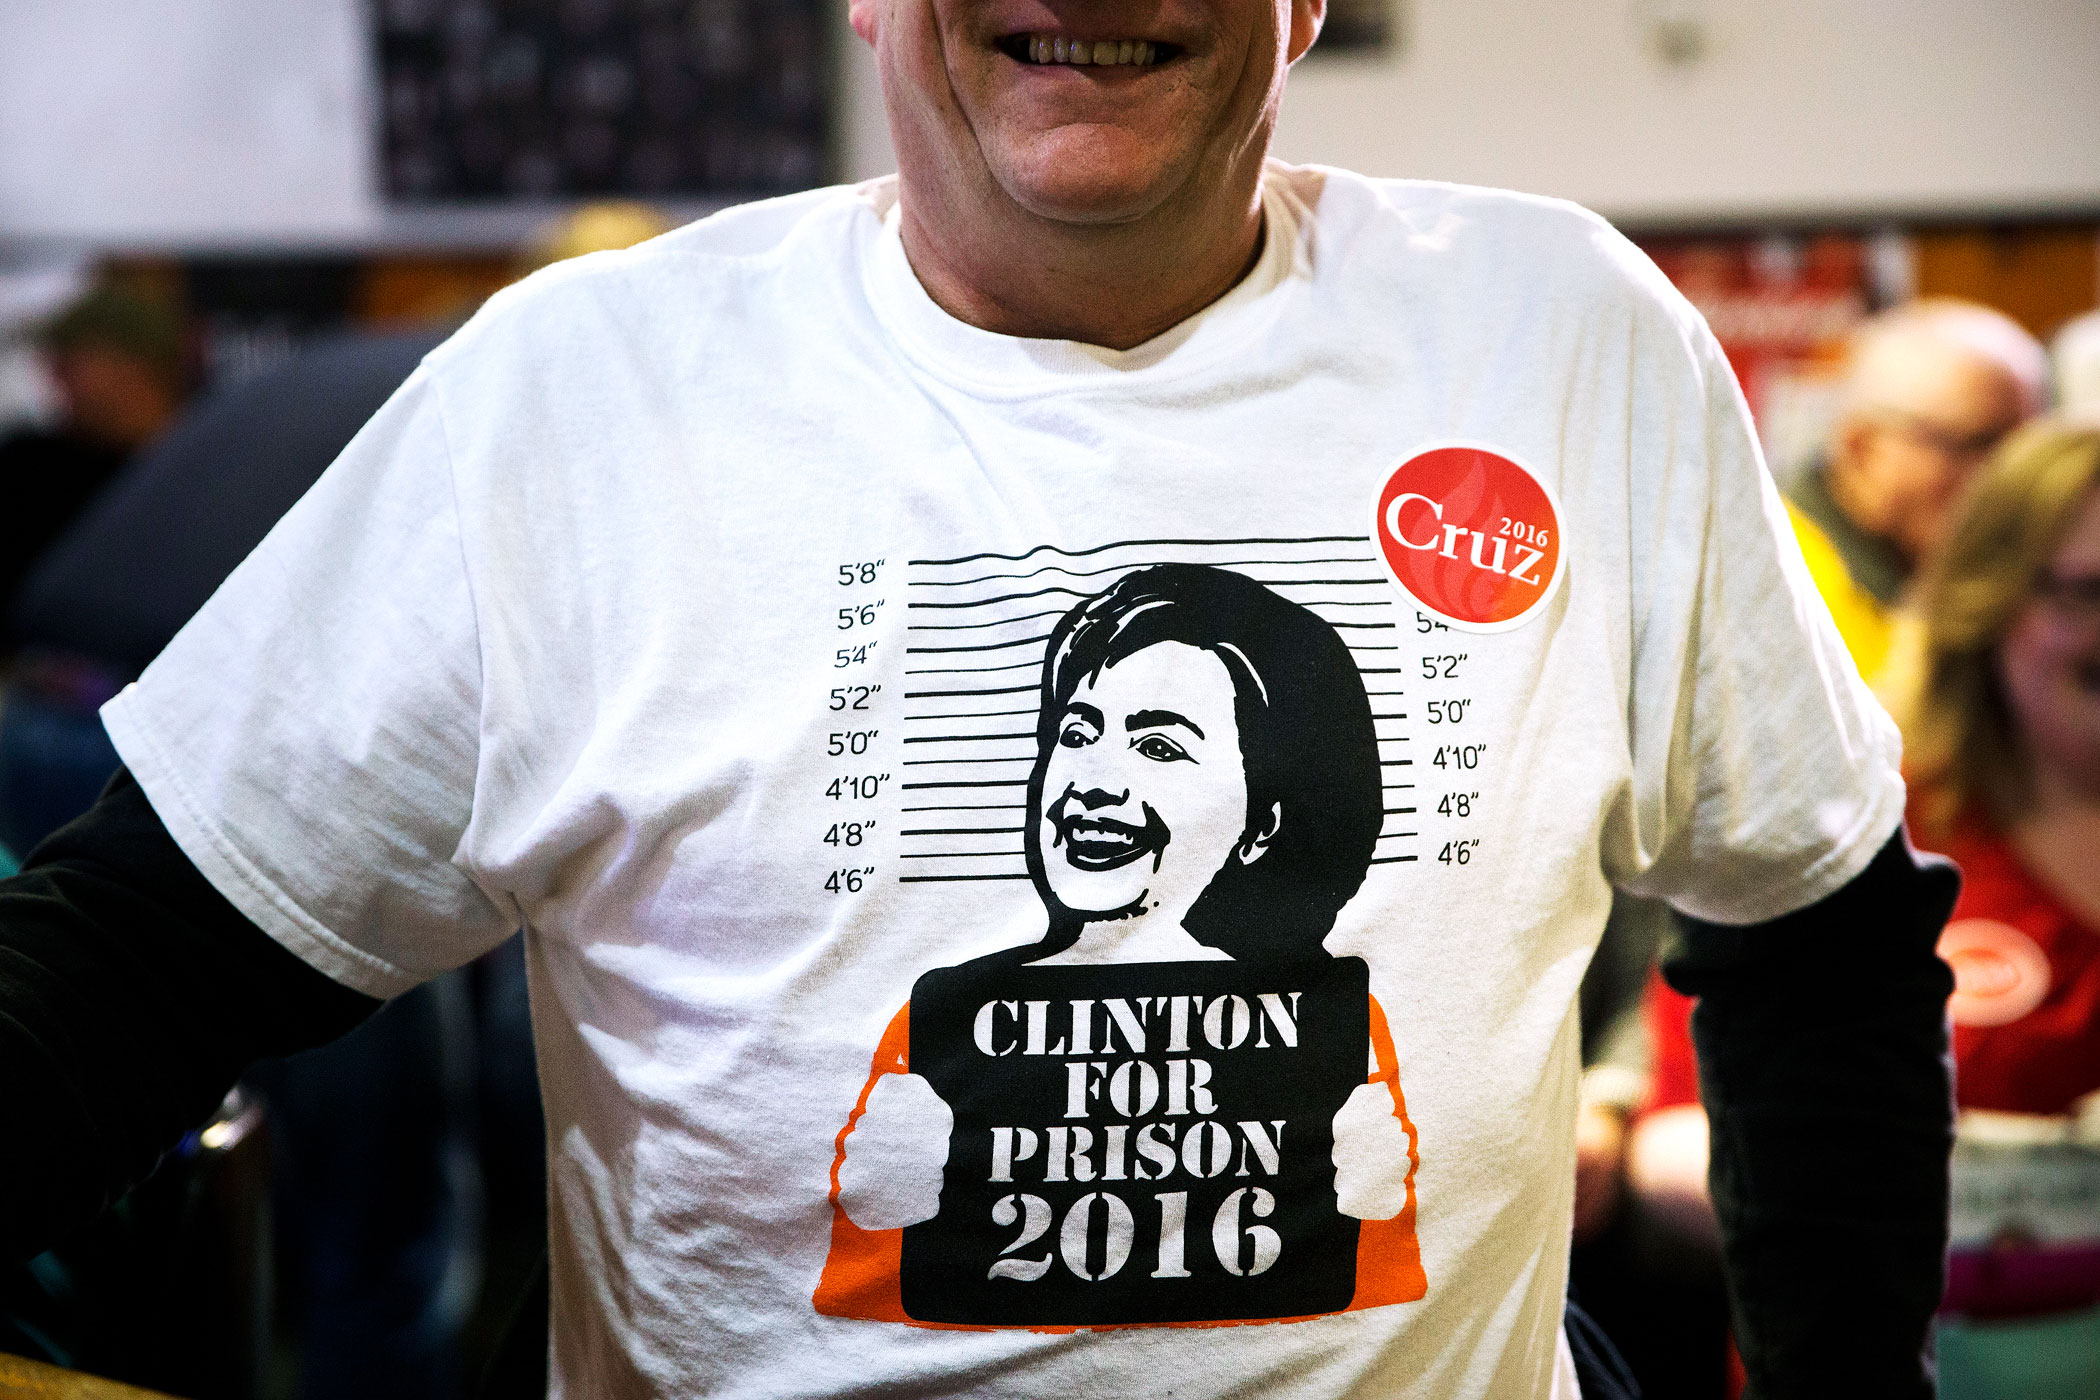 Mike Rasmussen, wearing a t-shirt opposing Hillary Clinton attends a campaign stop for Republican presidential candidate, Texas Sen. Ted Cruz on Jan. 29 in Ringsted, Iowa.